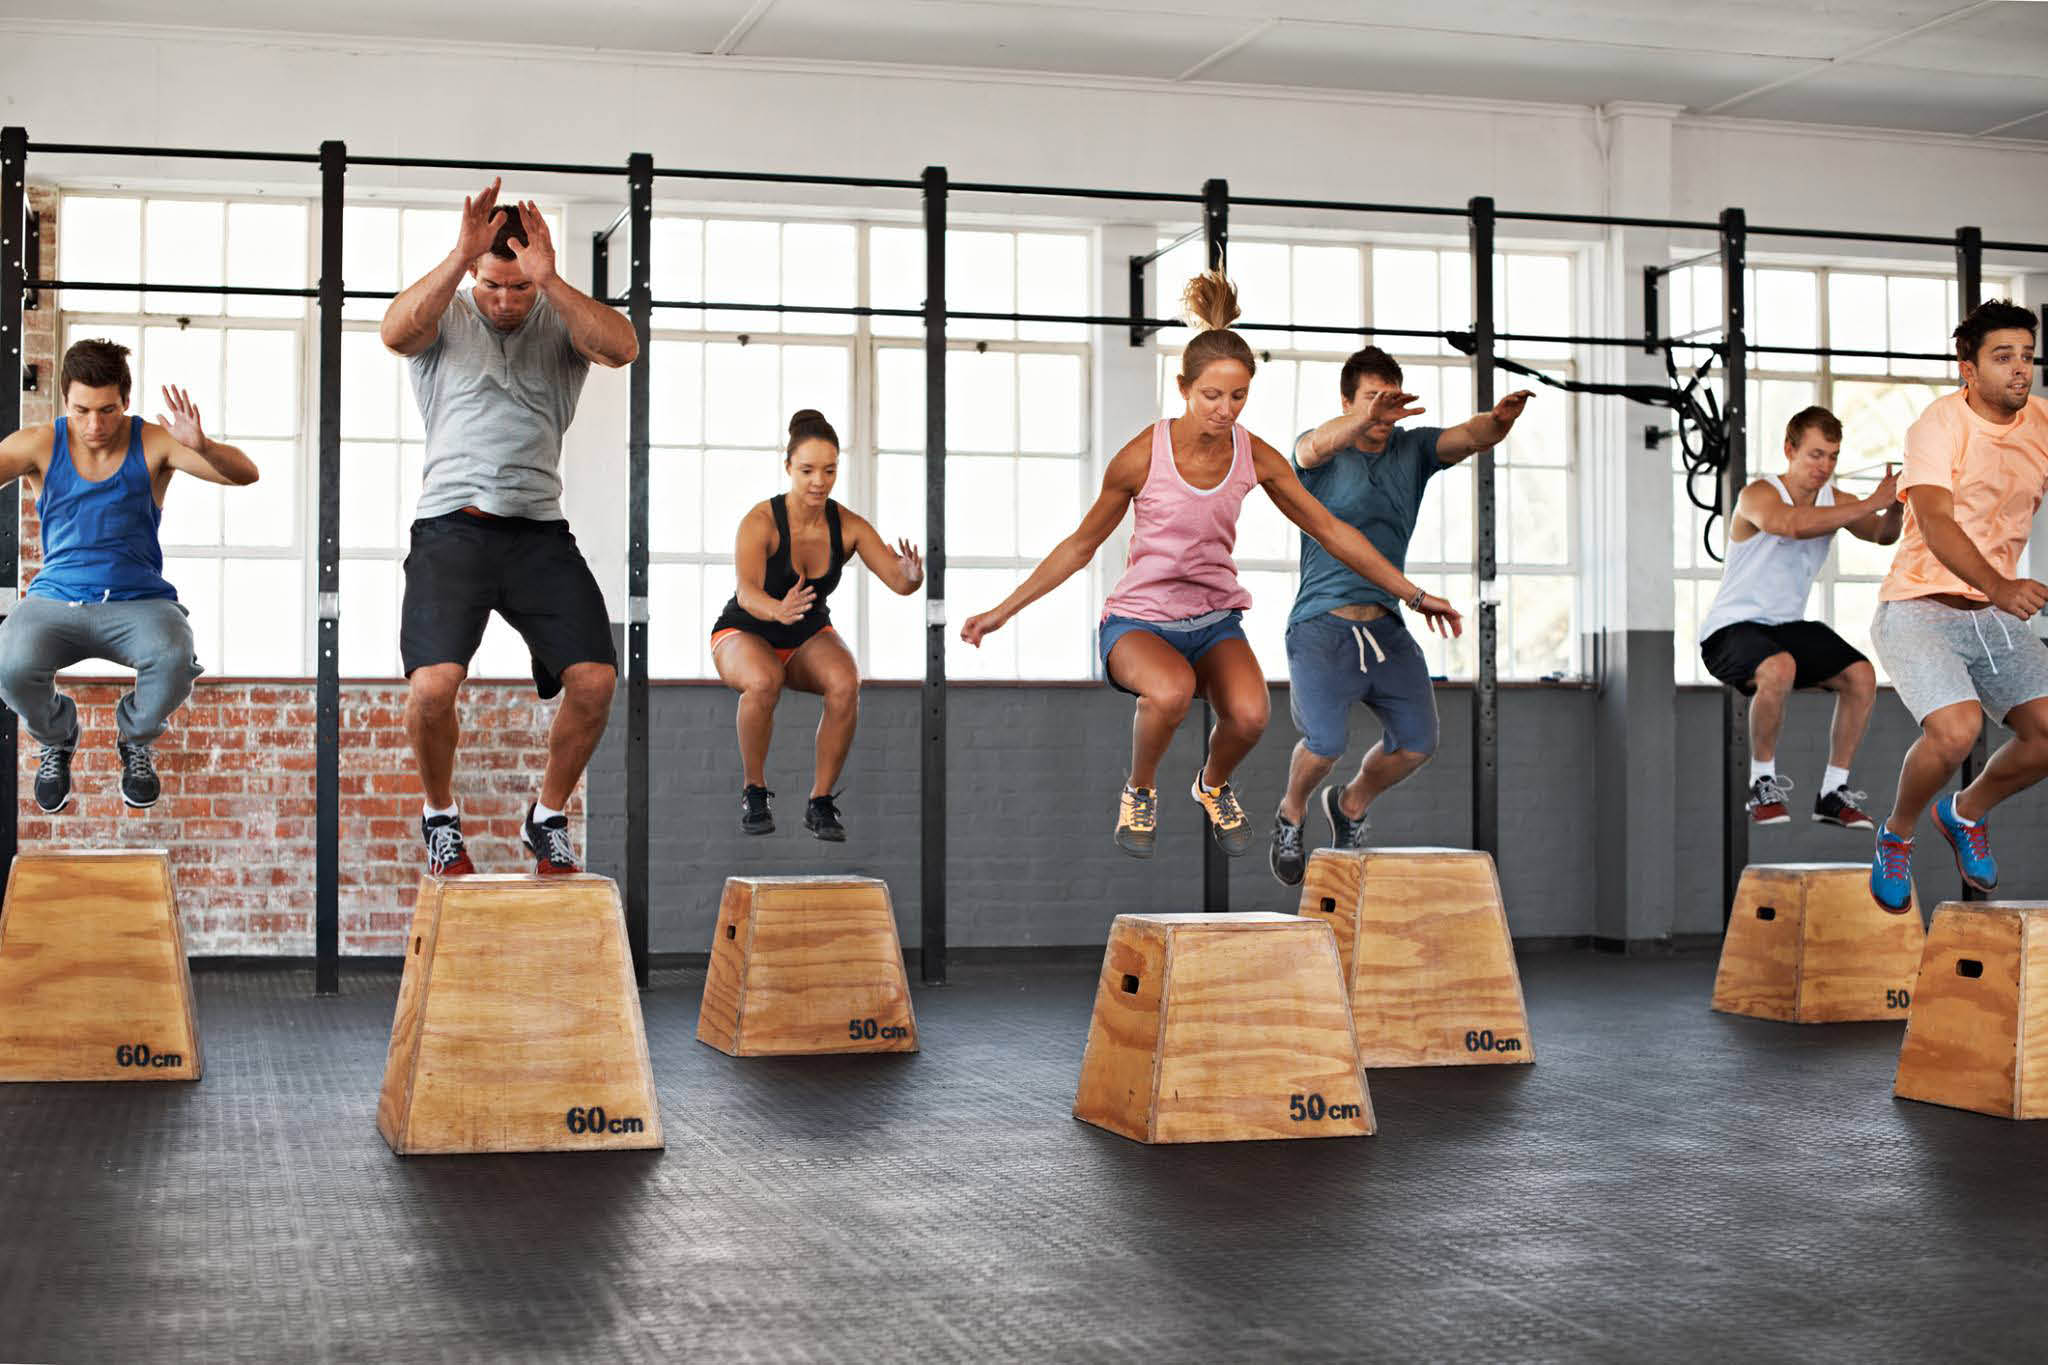 Large variety of group classes are offered at Columbia Athletic Club Juanita Bay in Kirkland, WA - Kirkland health clubs - Kirkland fitness clubs